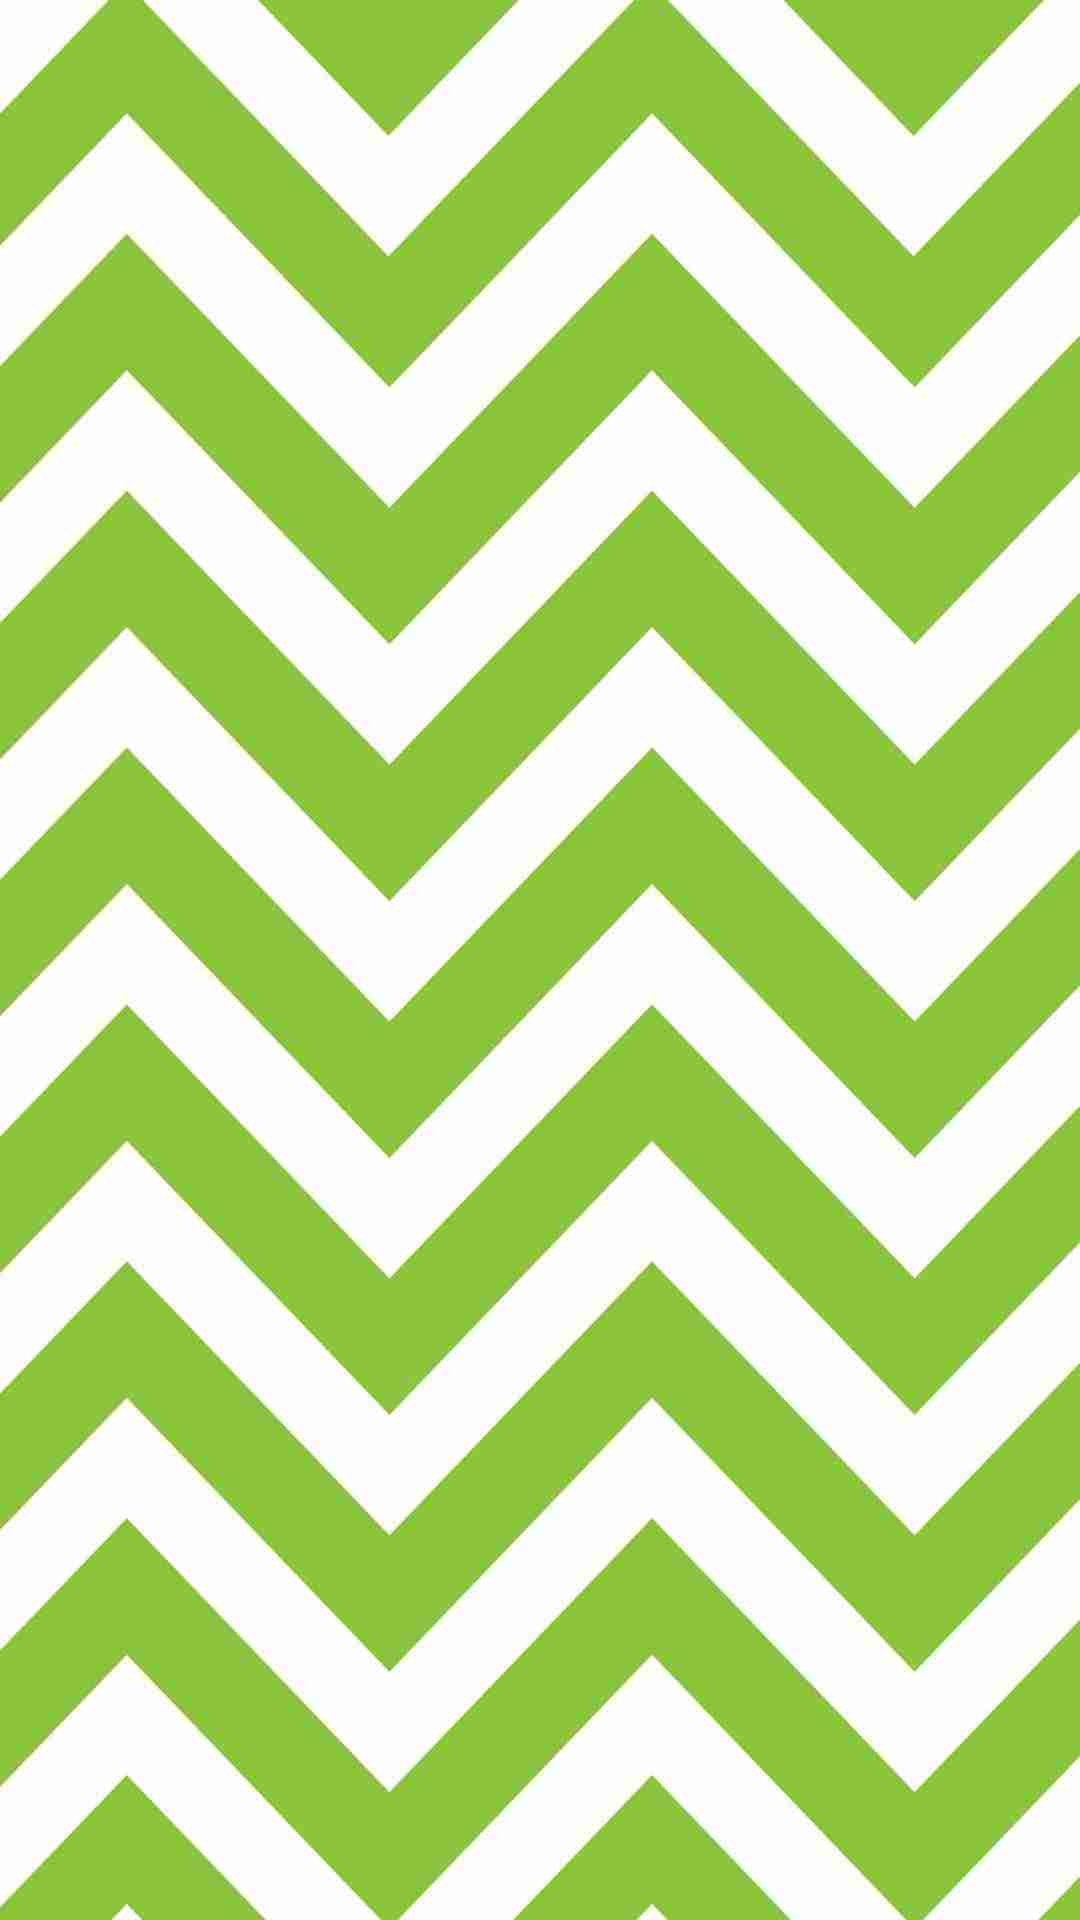 Res: 1080x1920, Light Green Chevron iPhone 6 Plus Wallpaper - White Zigzag Pattern, Ze Print